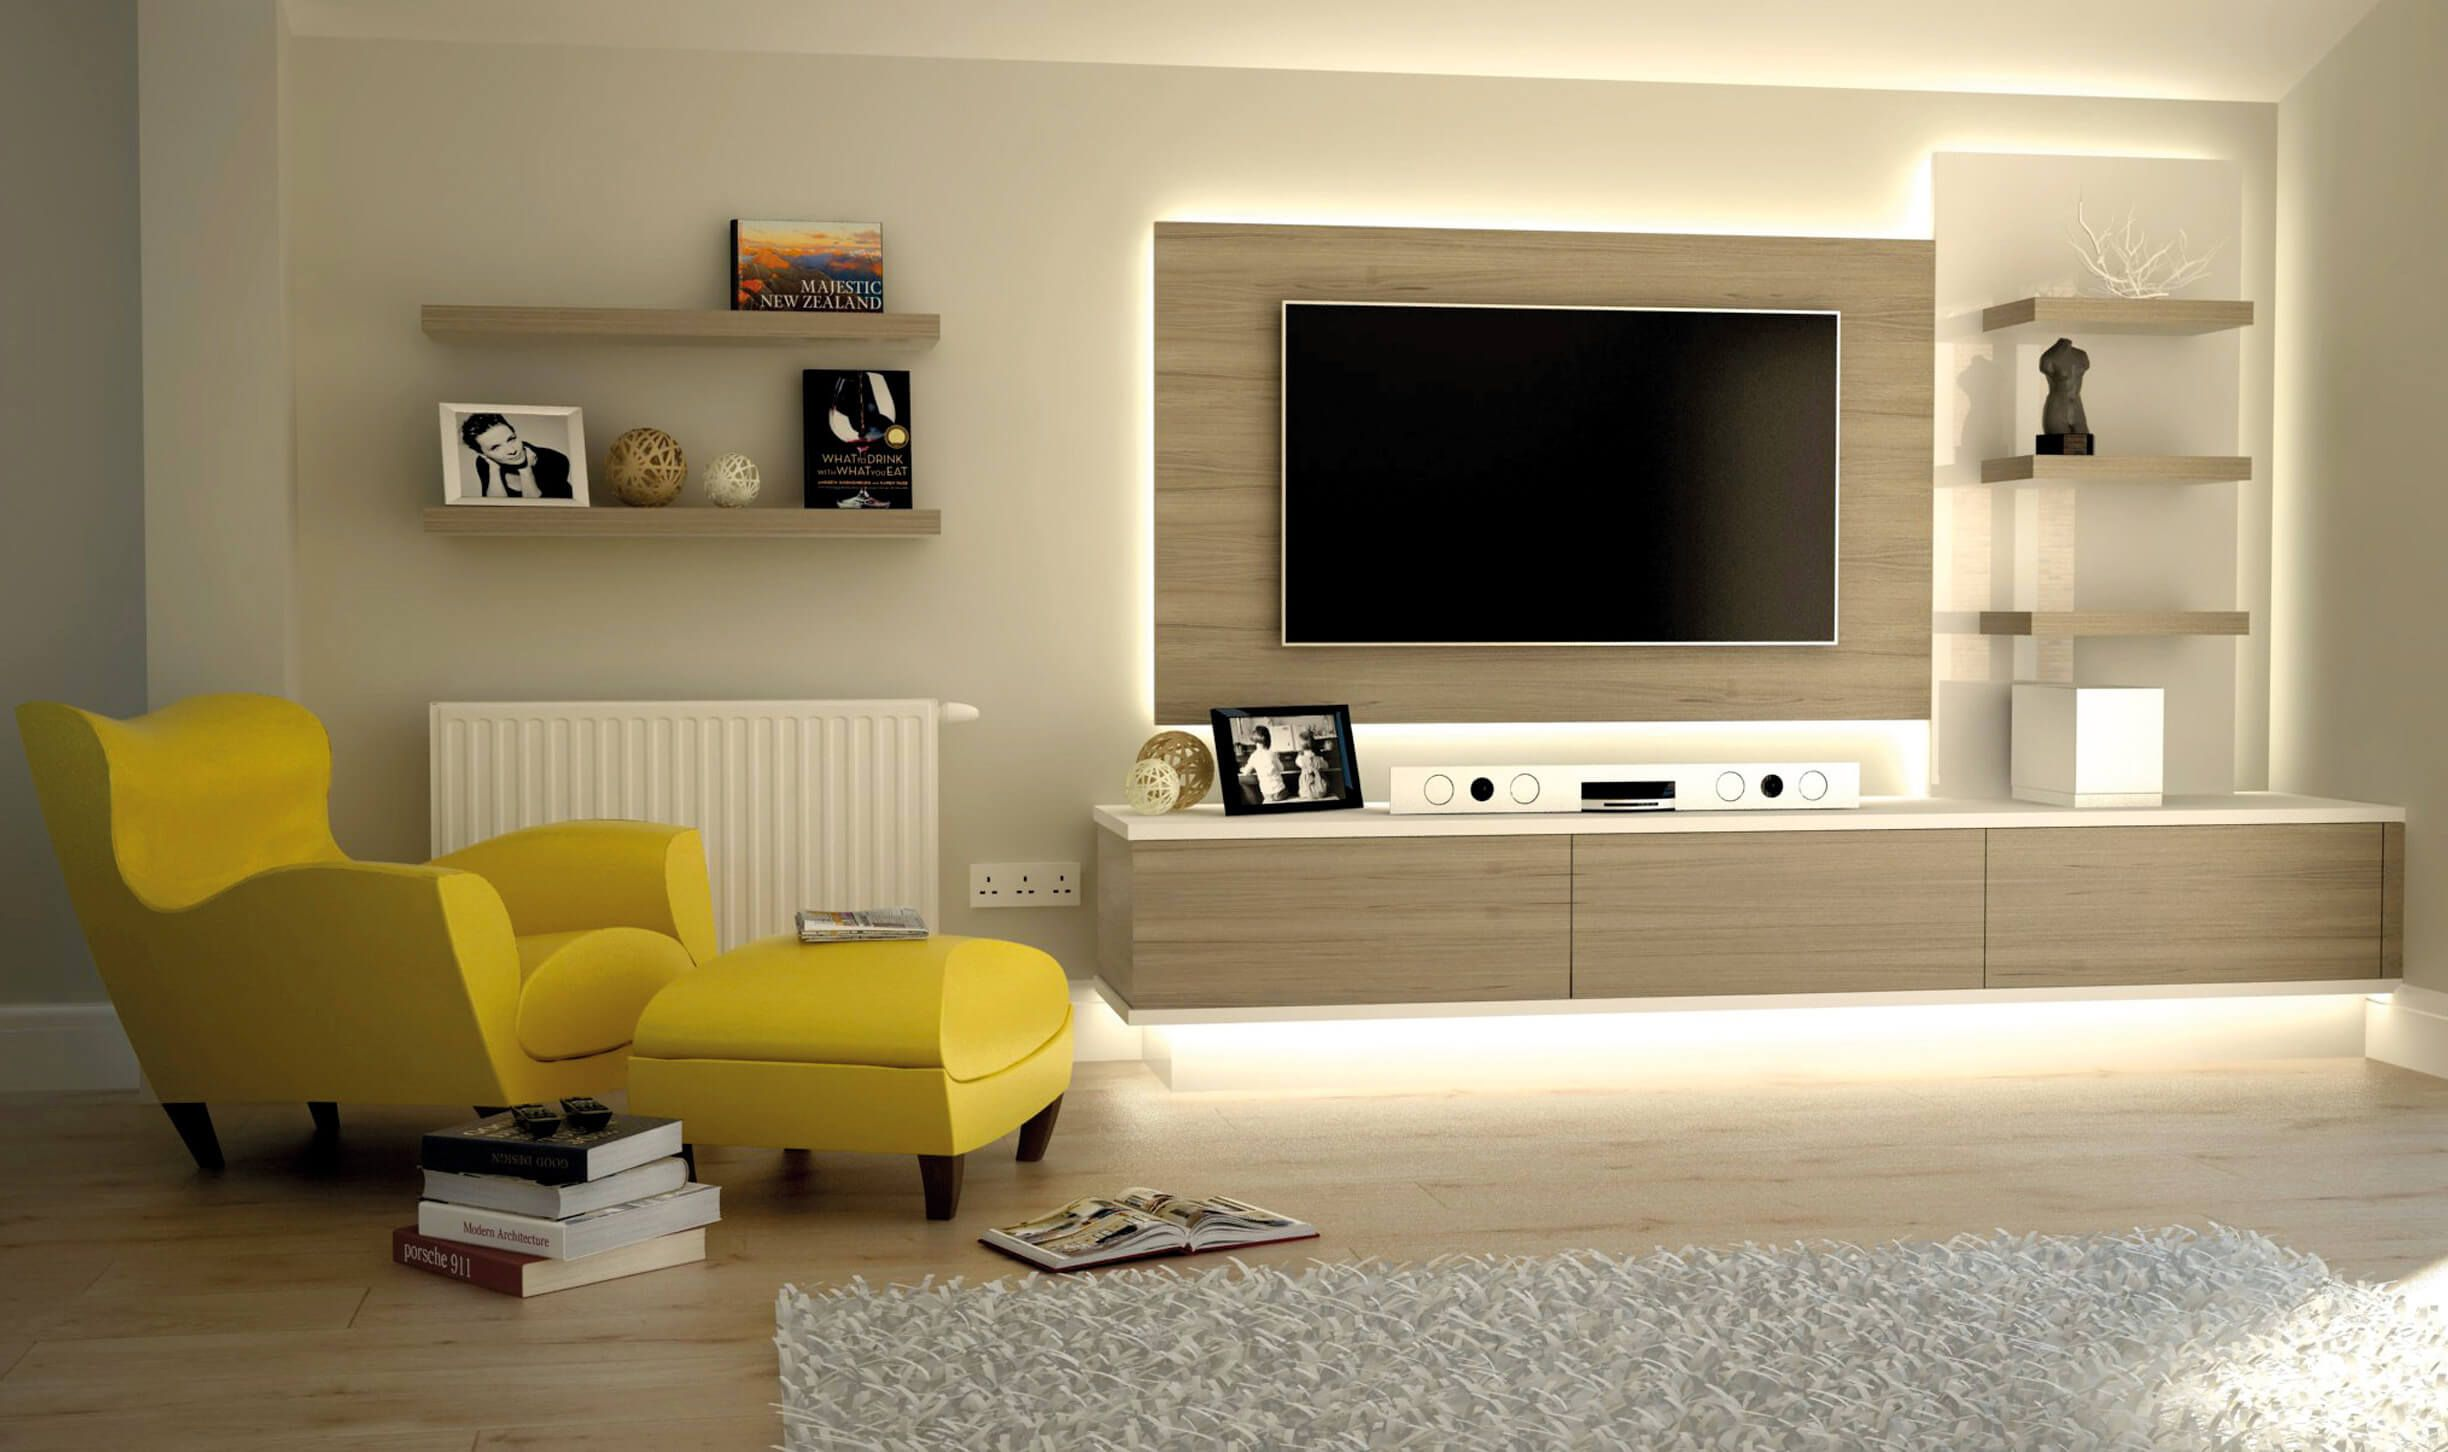 Bespoke TV Cabinets, Bookcases And Storage Units. For Over